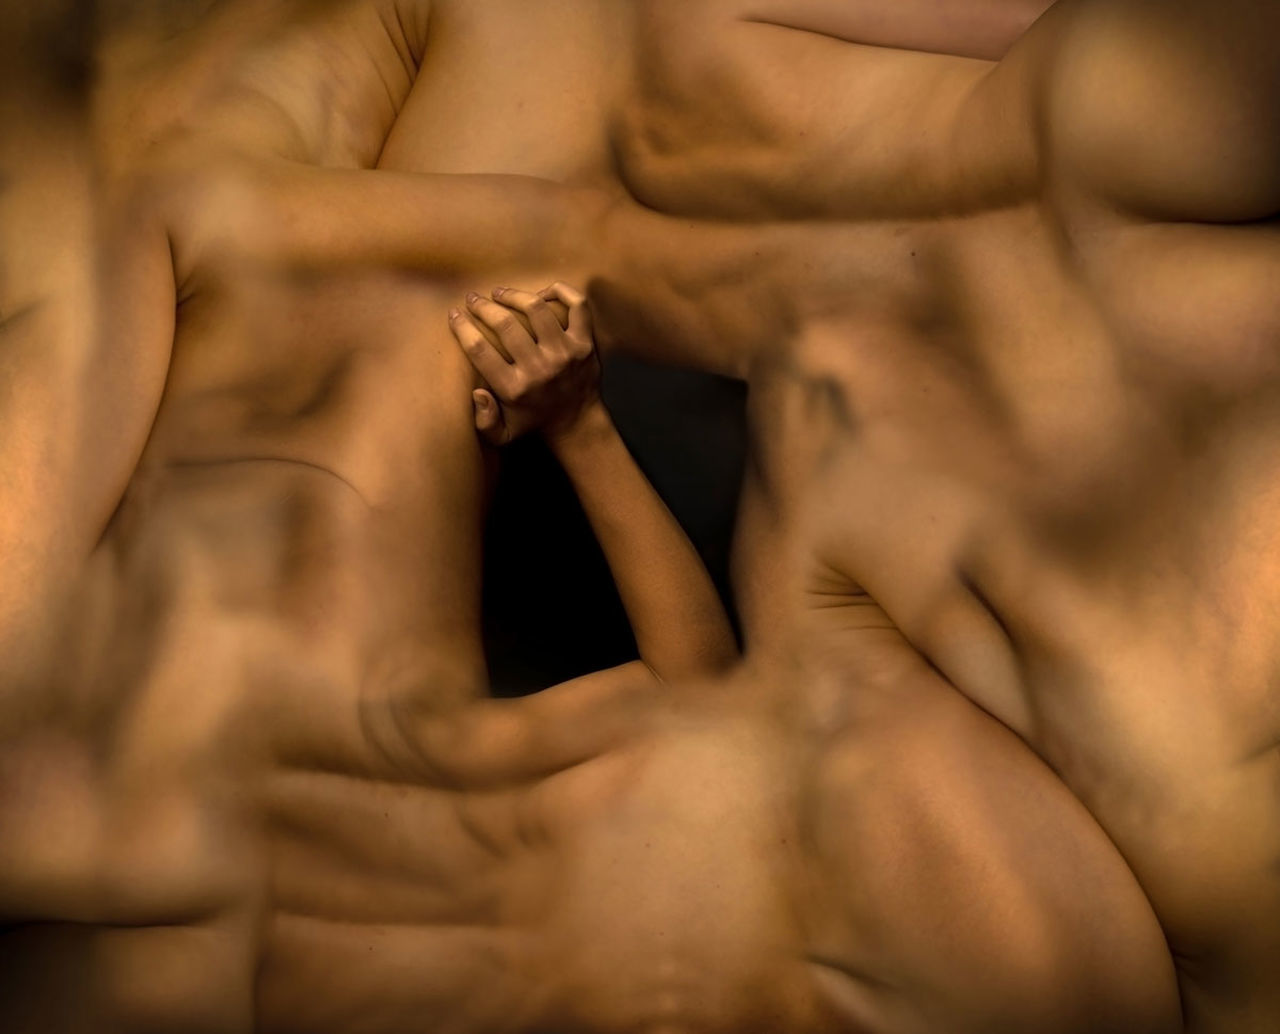 shirtless, human body part, strength, hand, muscular build, human hand, men, body part, lifestyles, indoors, togetherness, human skin, healthy lifestyle, adult, people, skin, close-up, midsection, abdominal muscle, couple - relationship, chest